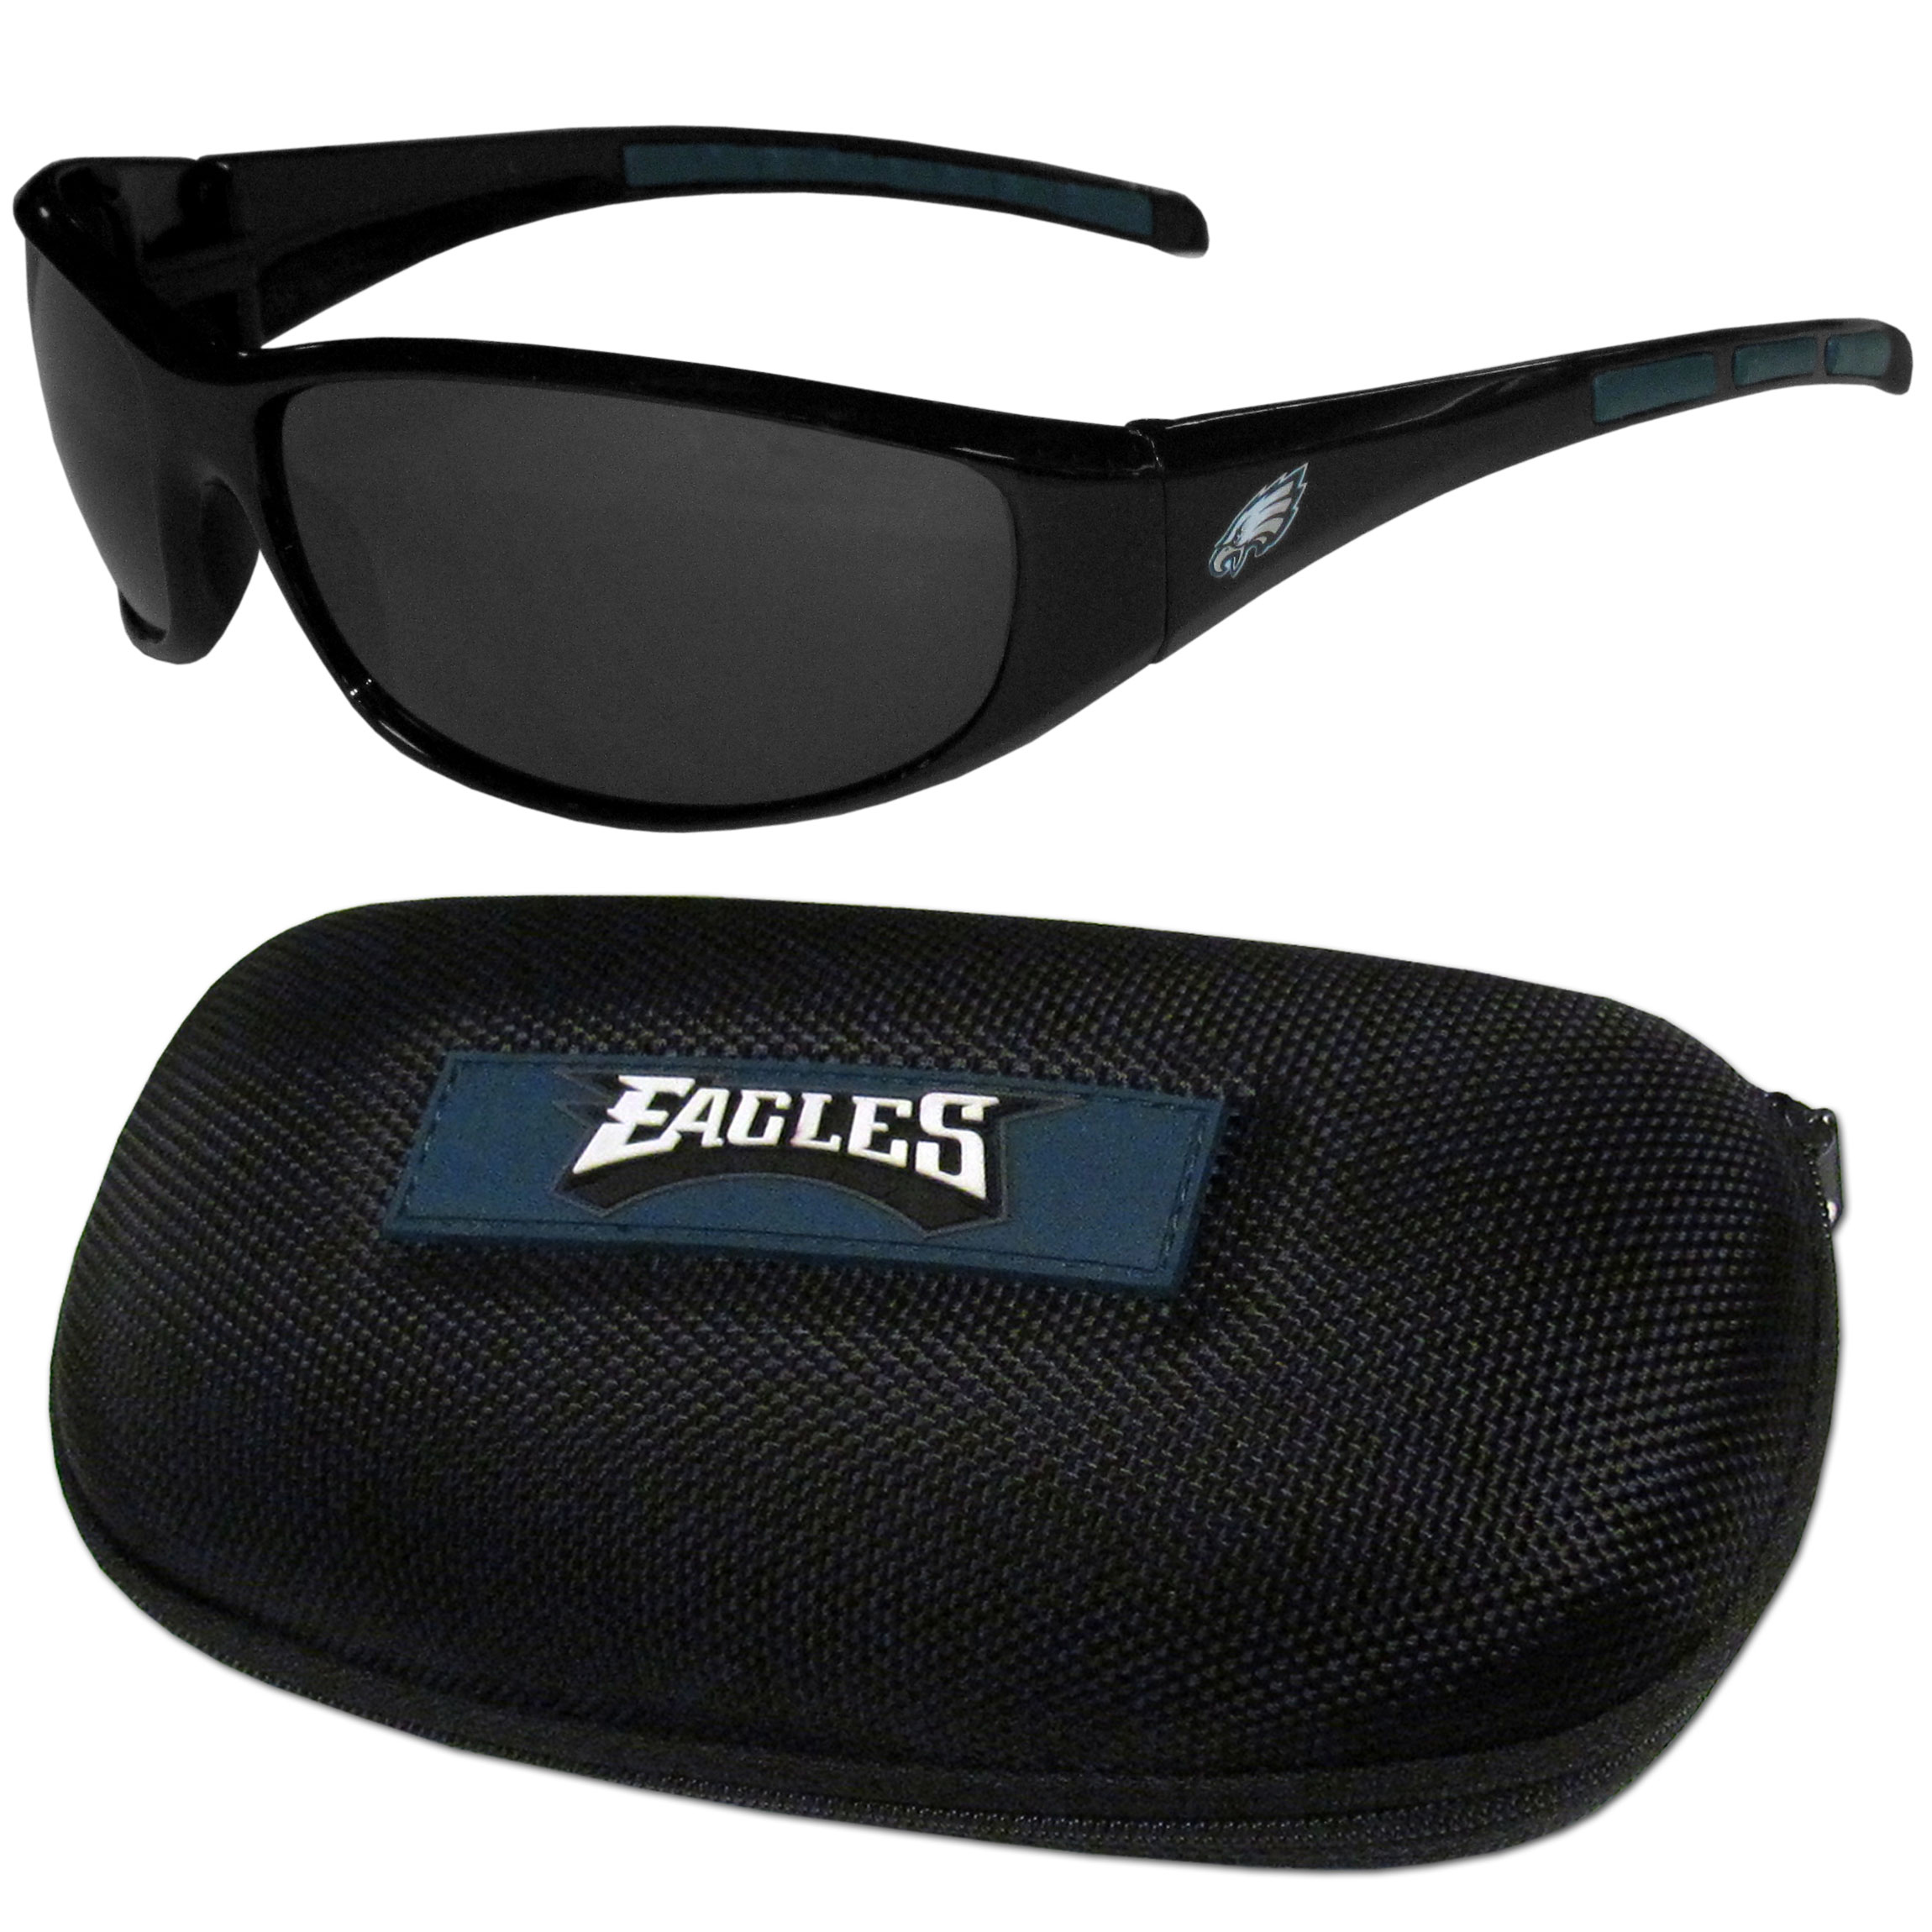 Philadelphia Eagles Wrap Sunglass and Case Set - This great set includes a high quality pair of Philadelphia Eagles wrap sunglasses and hard carrying case.